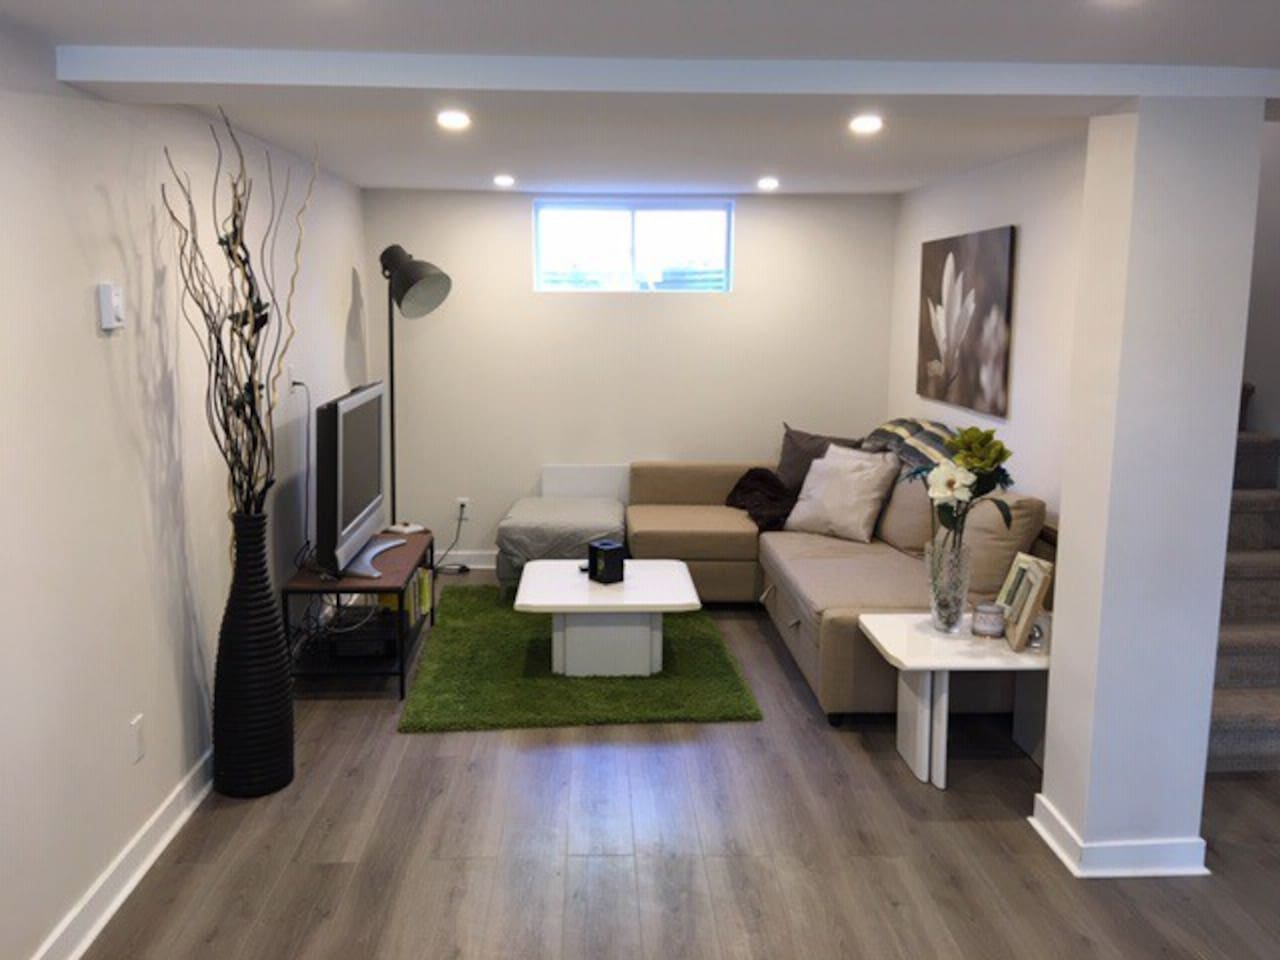 Private living space with Cable TV and pull out bed